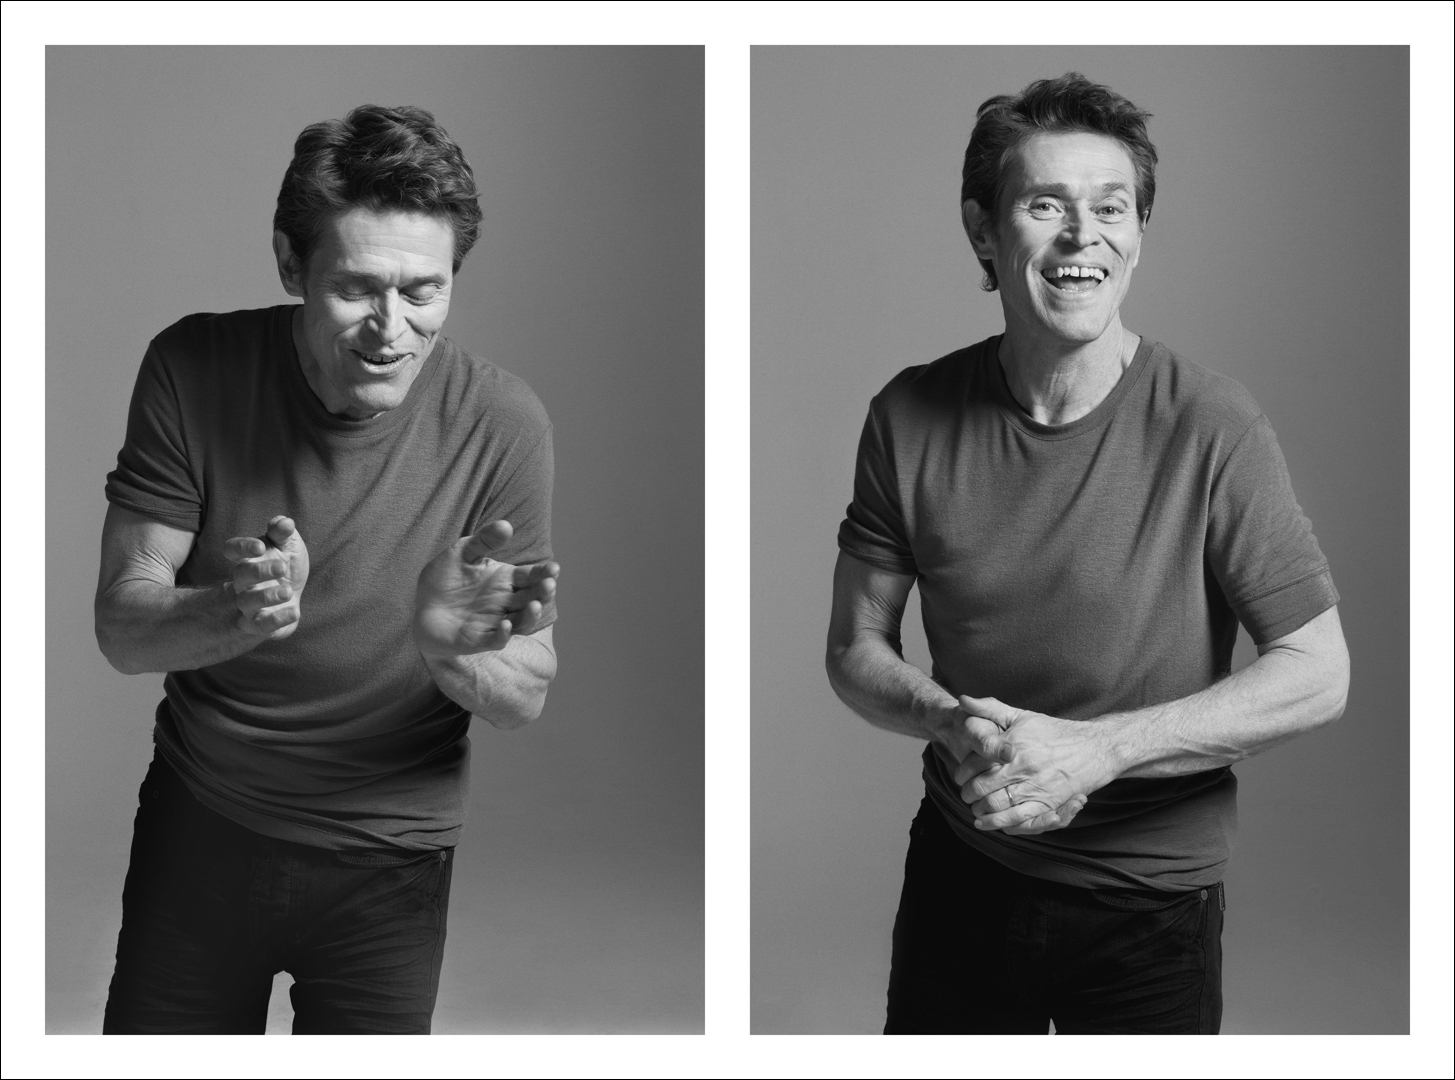 11_TIM_BARBER_WILLEM_DAFOE.jpg